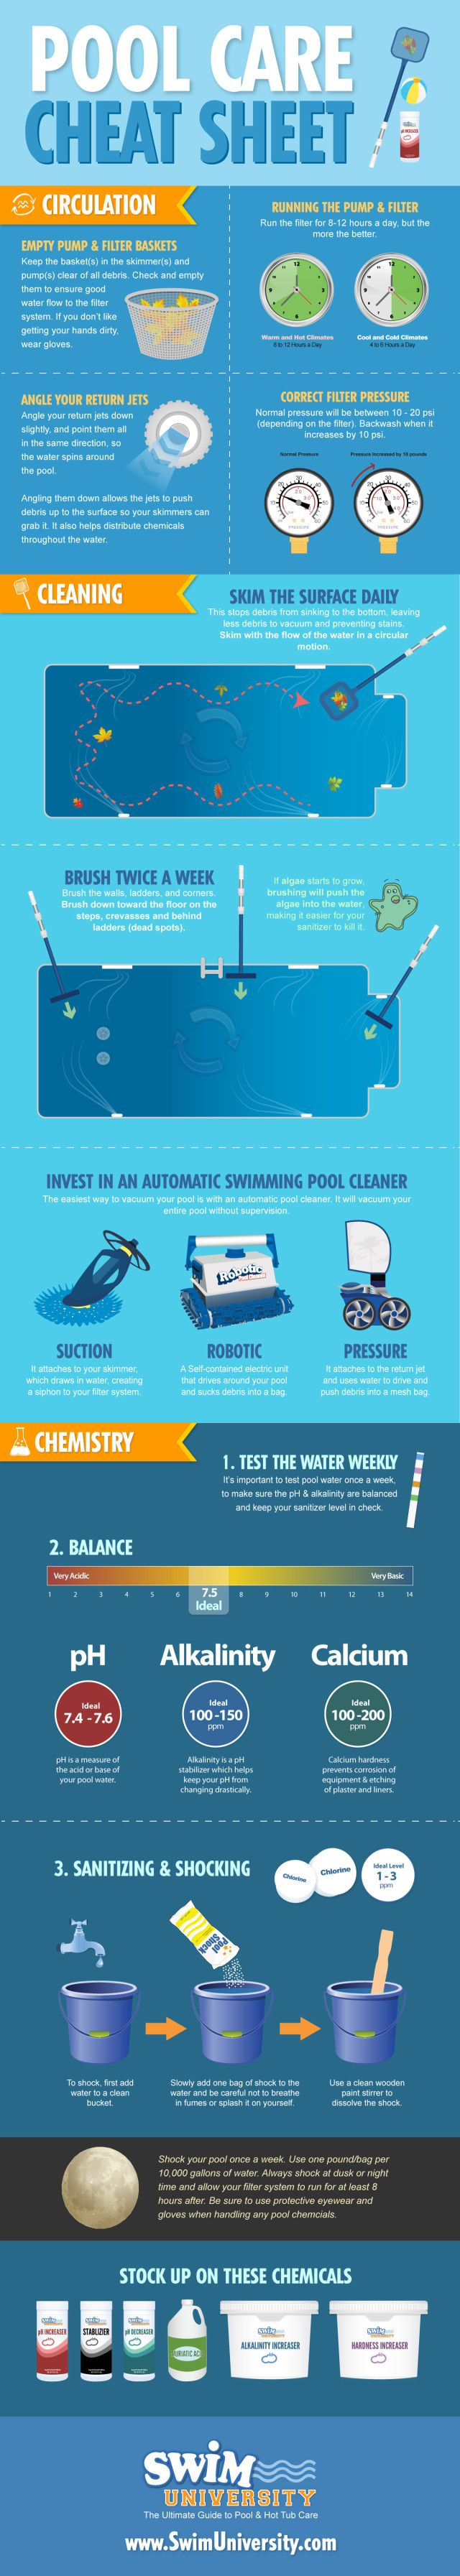 The Pool Care Cheat Sheet [Infographic]